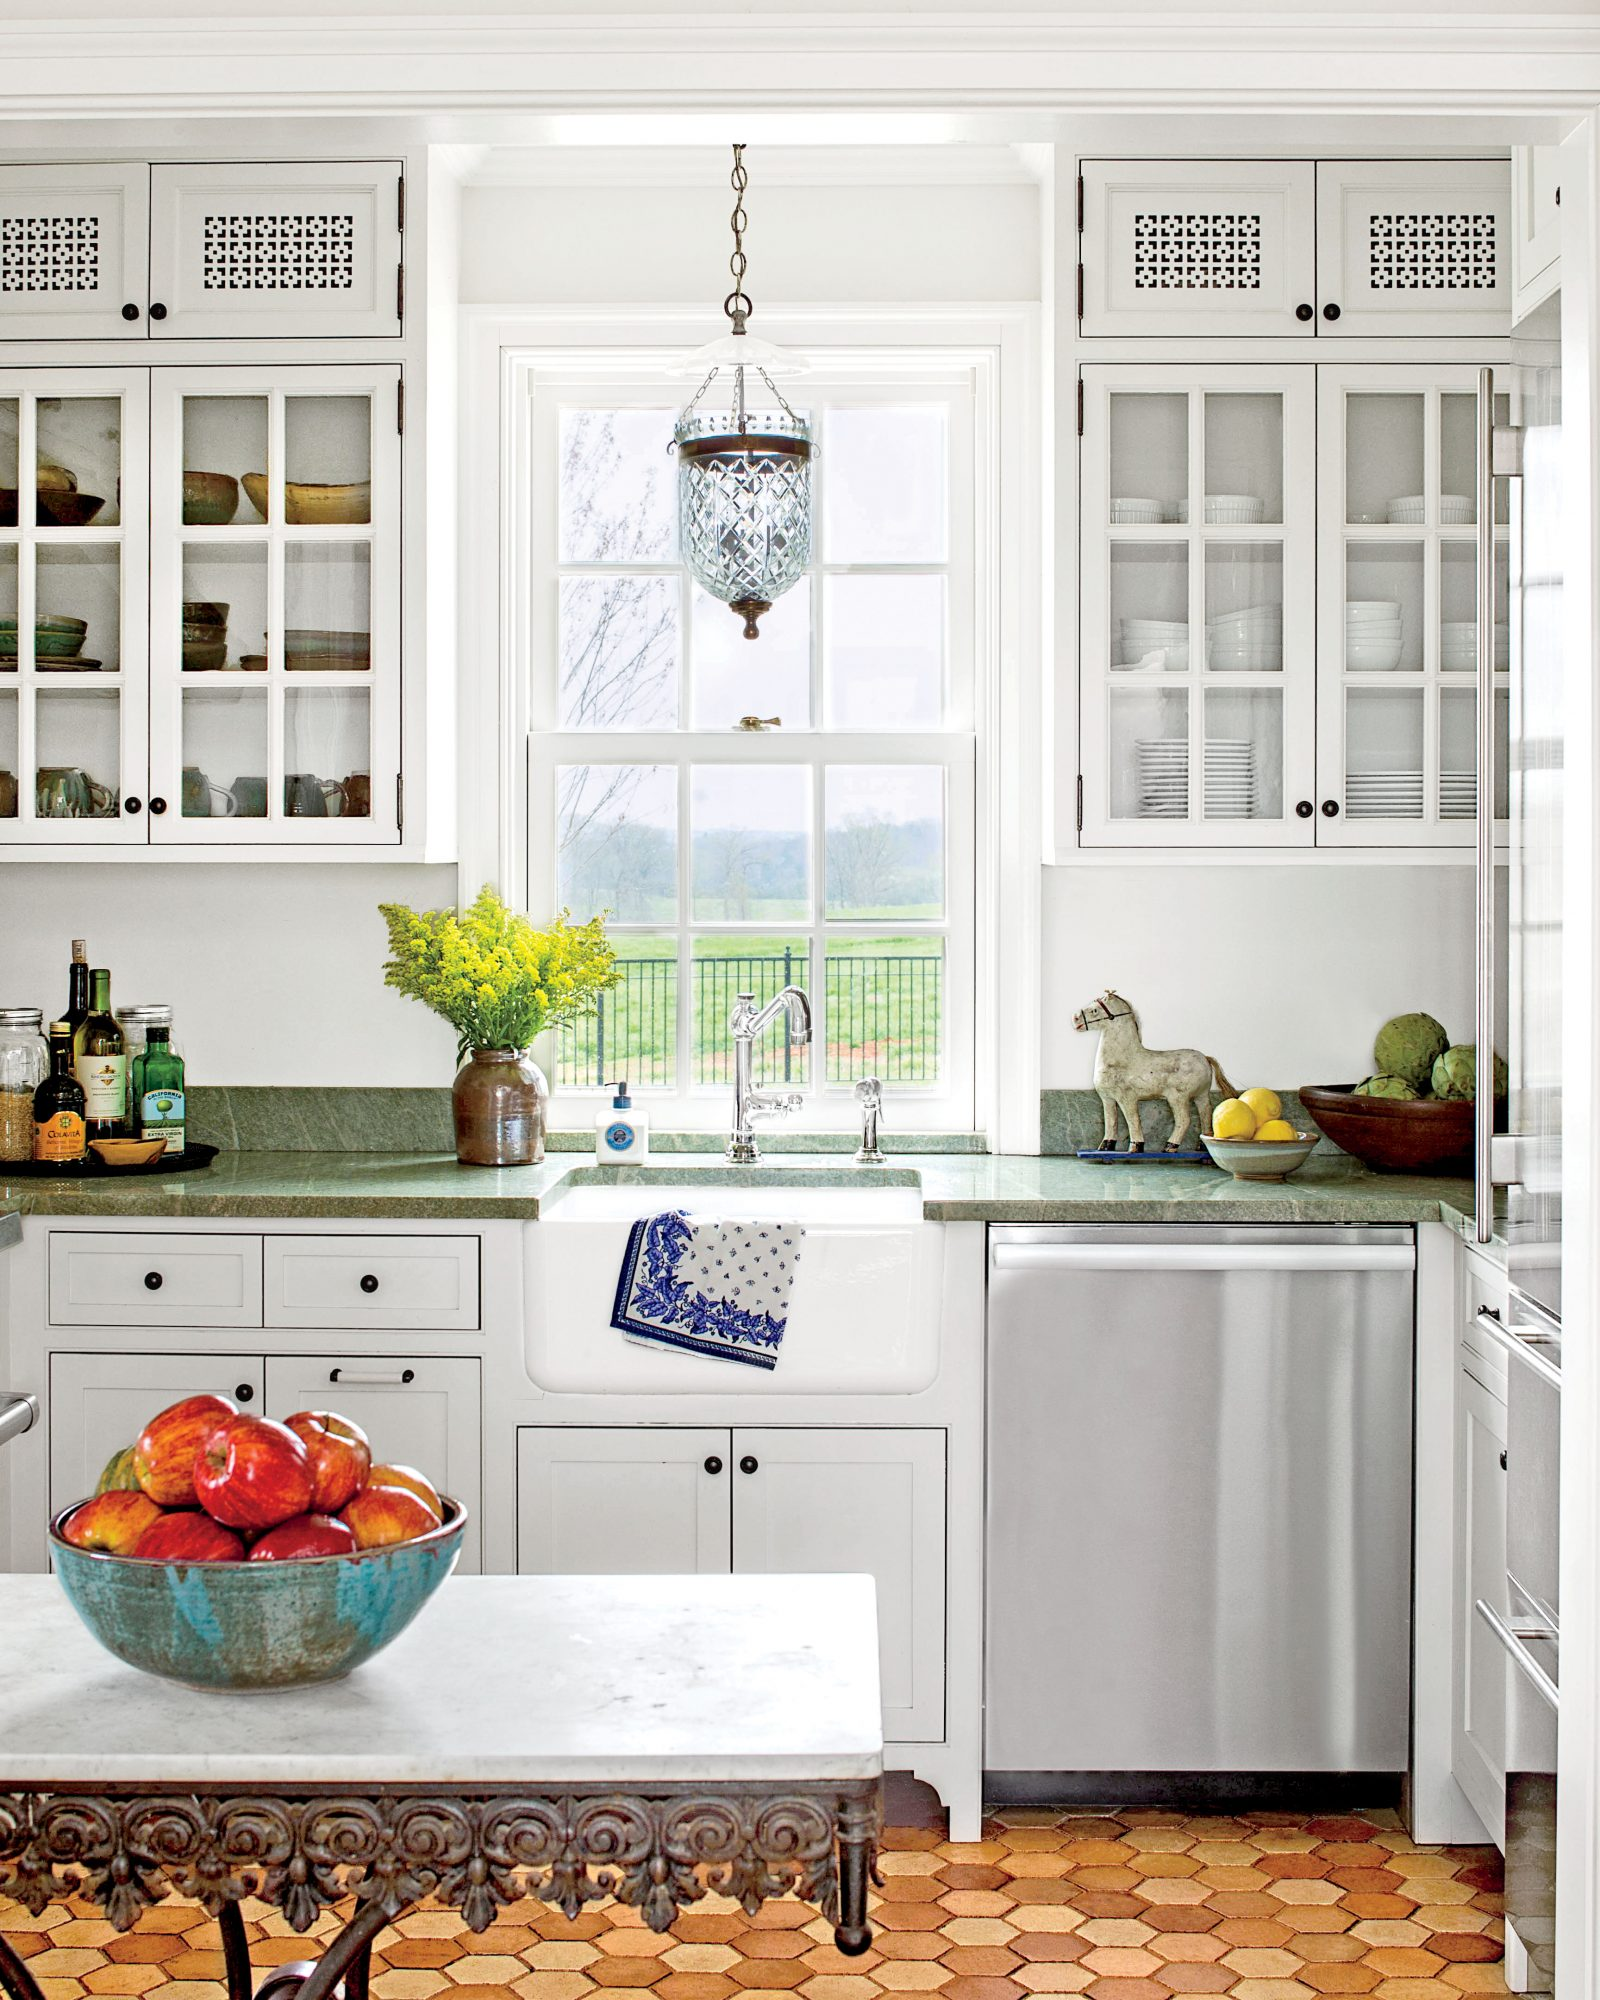 Tiny White Kitchen with Green Countertops